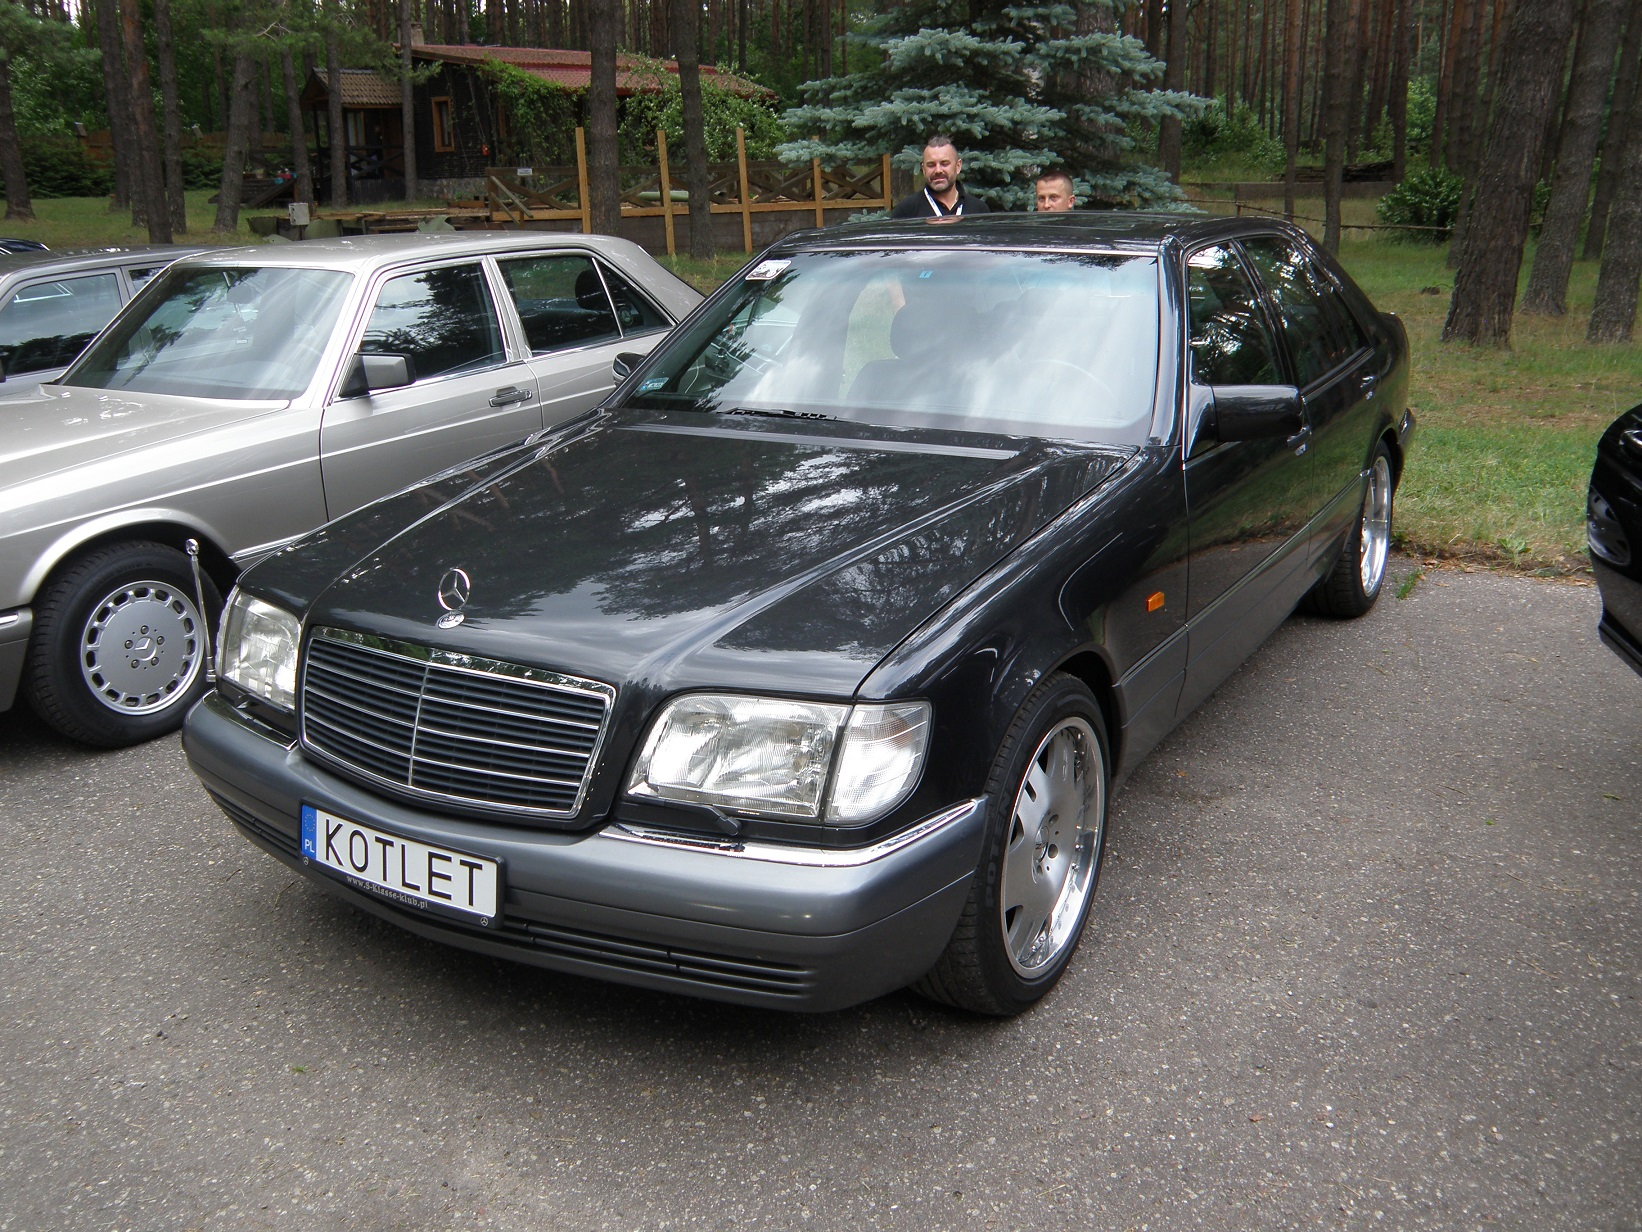 http://124coupe.pl/hosting/images/1498983300.jpg